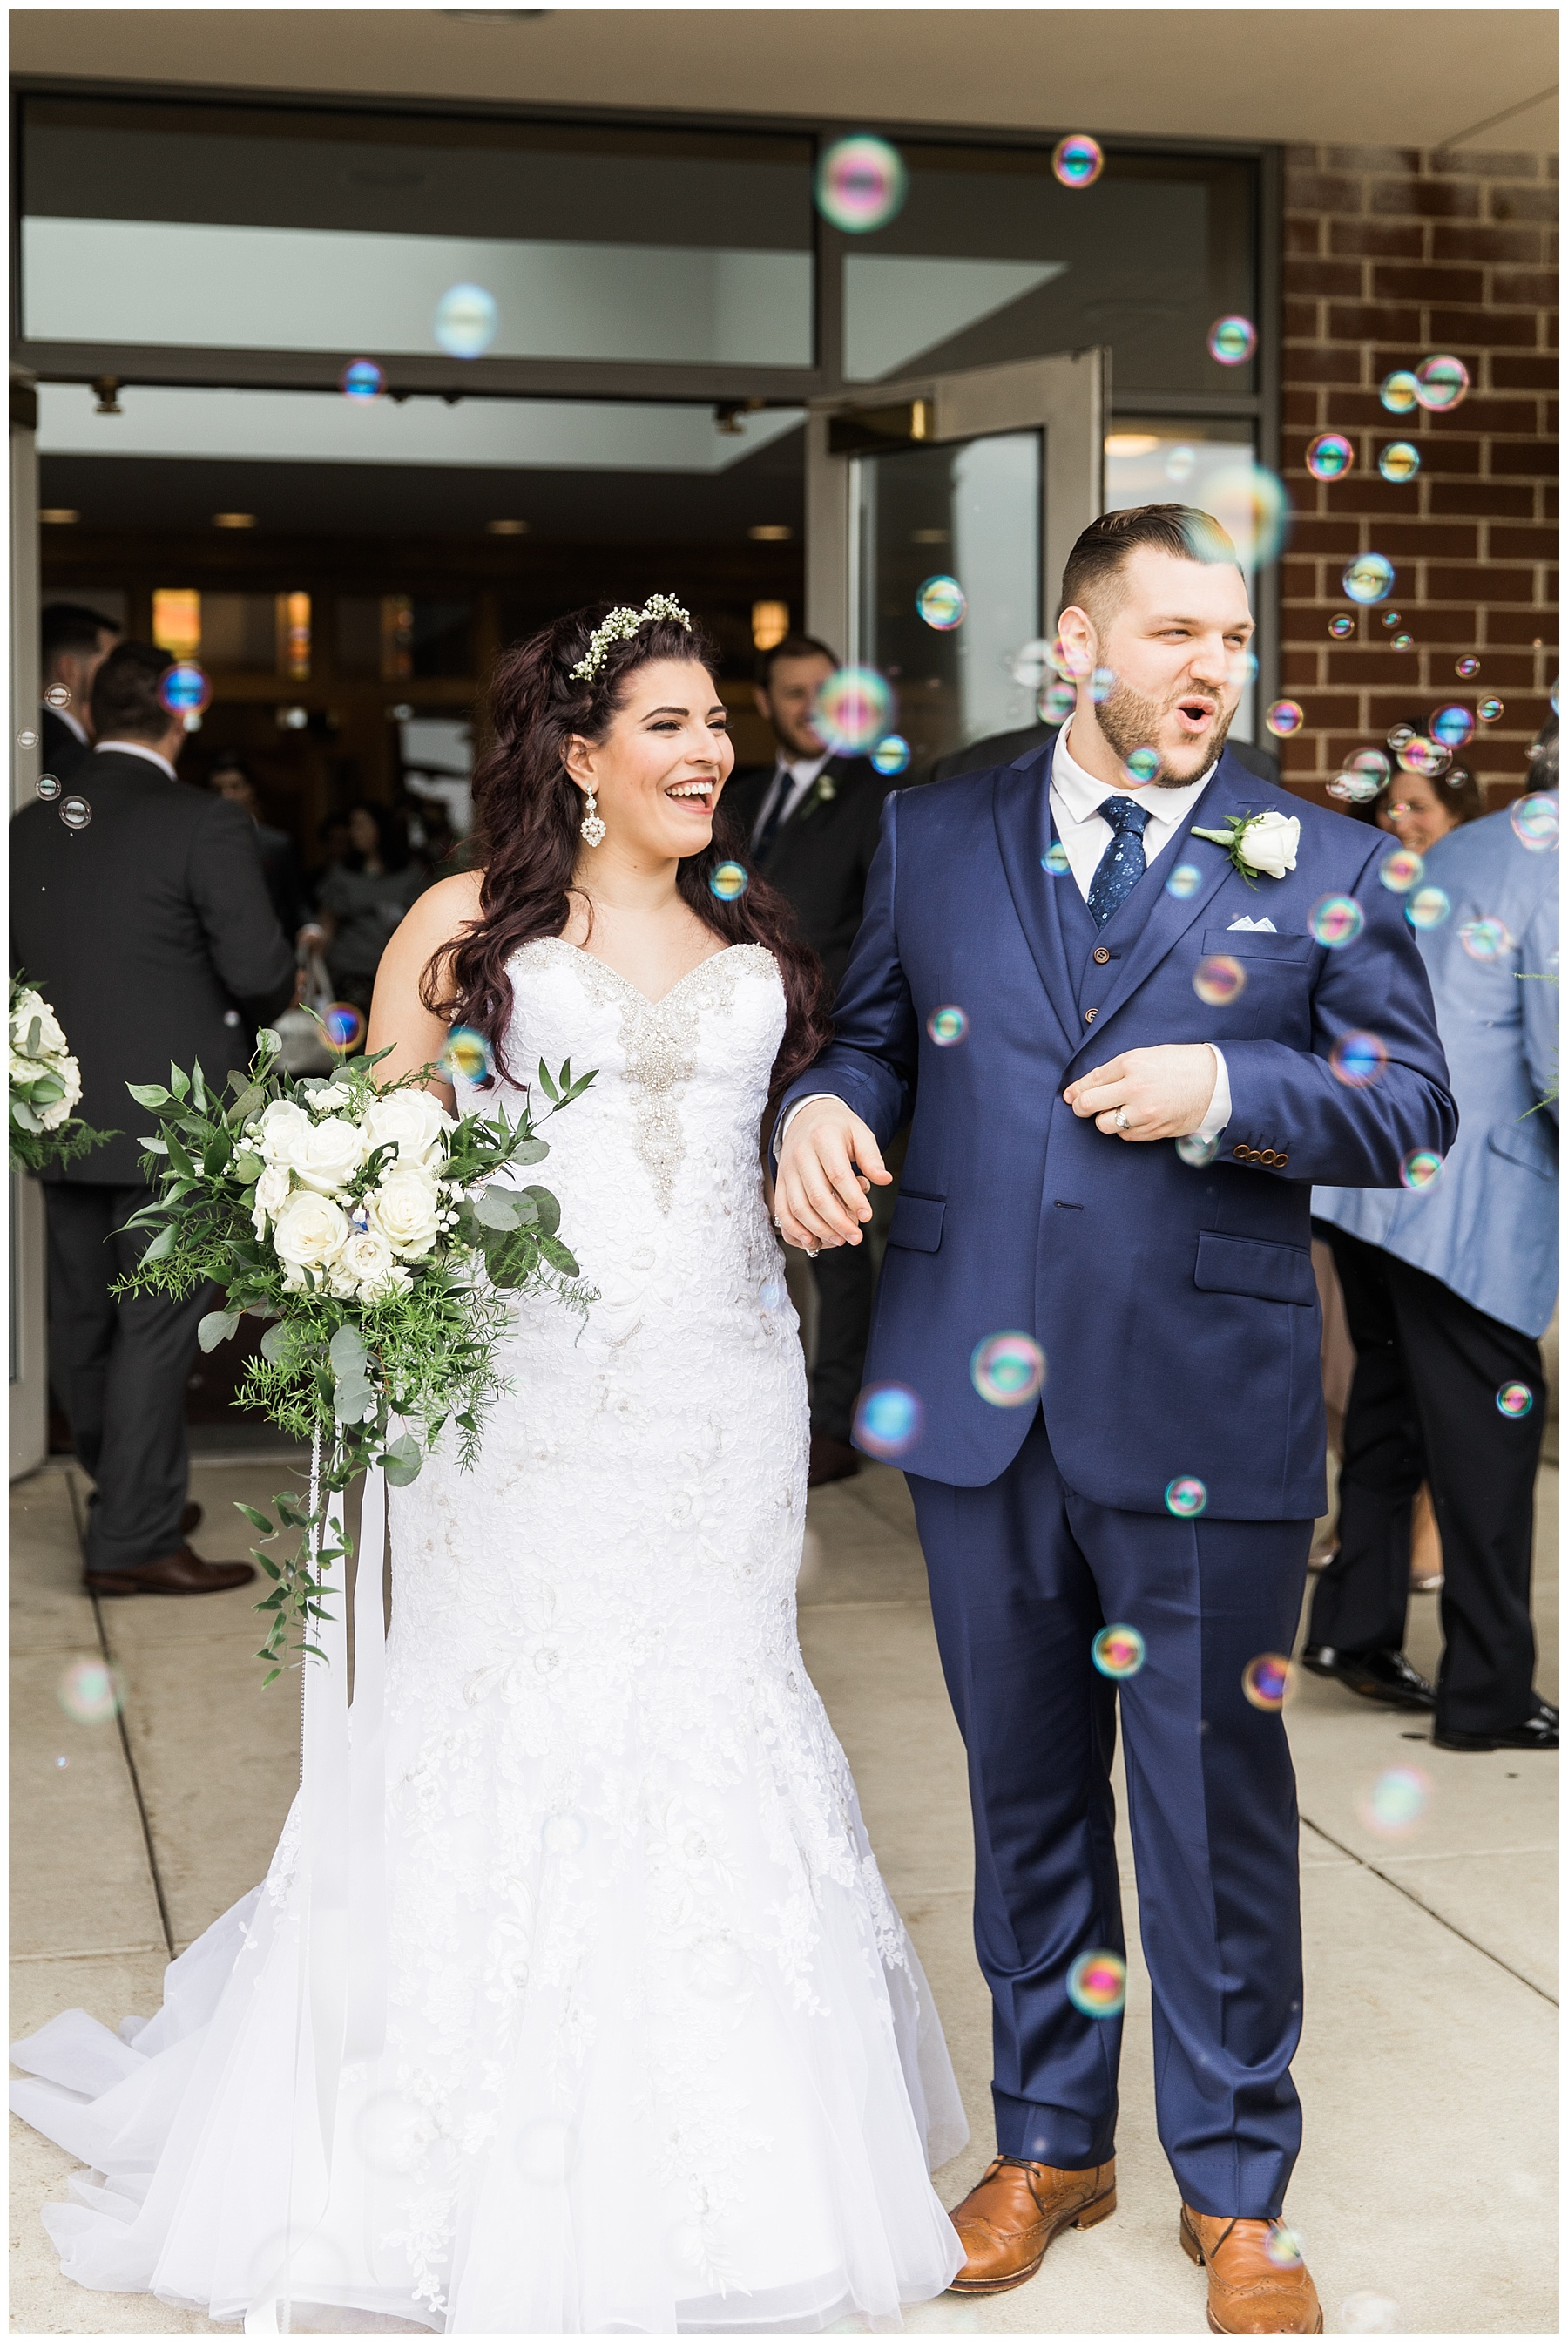 joseph ambler inn, PA wedding Photographer, Spring wedding, Montgomery County Wedding, Bucks County Wedding, wedding shoes, wedding invitation, navy blue wedding, wedding details, bridesmaids, bride, groom, pa wedding photography, philly wedding photographer, wanderlove, bride, bridal boquet